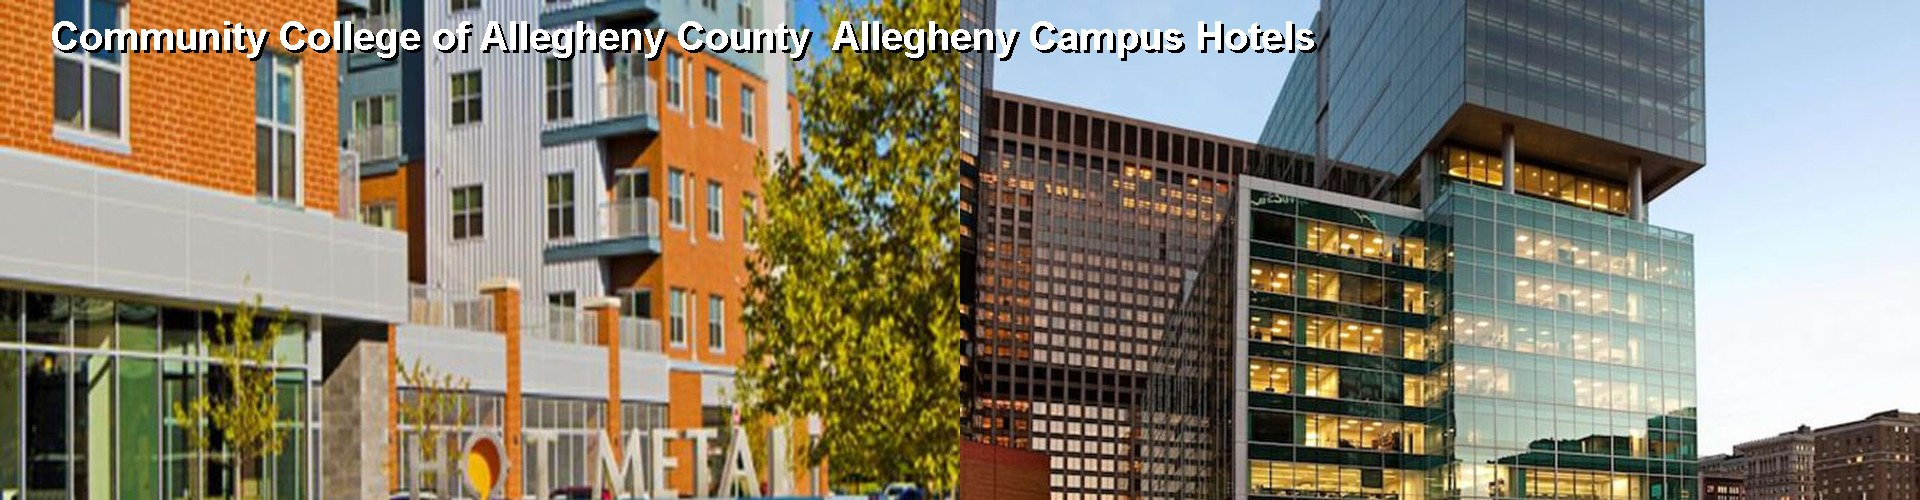 5 Best Hotels near Community College of Allegheny County Allegheny Campus